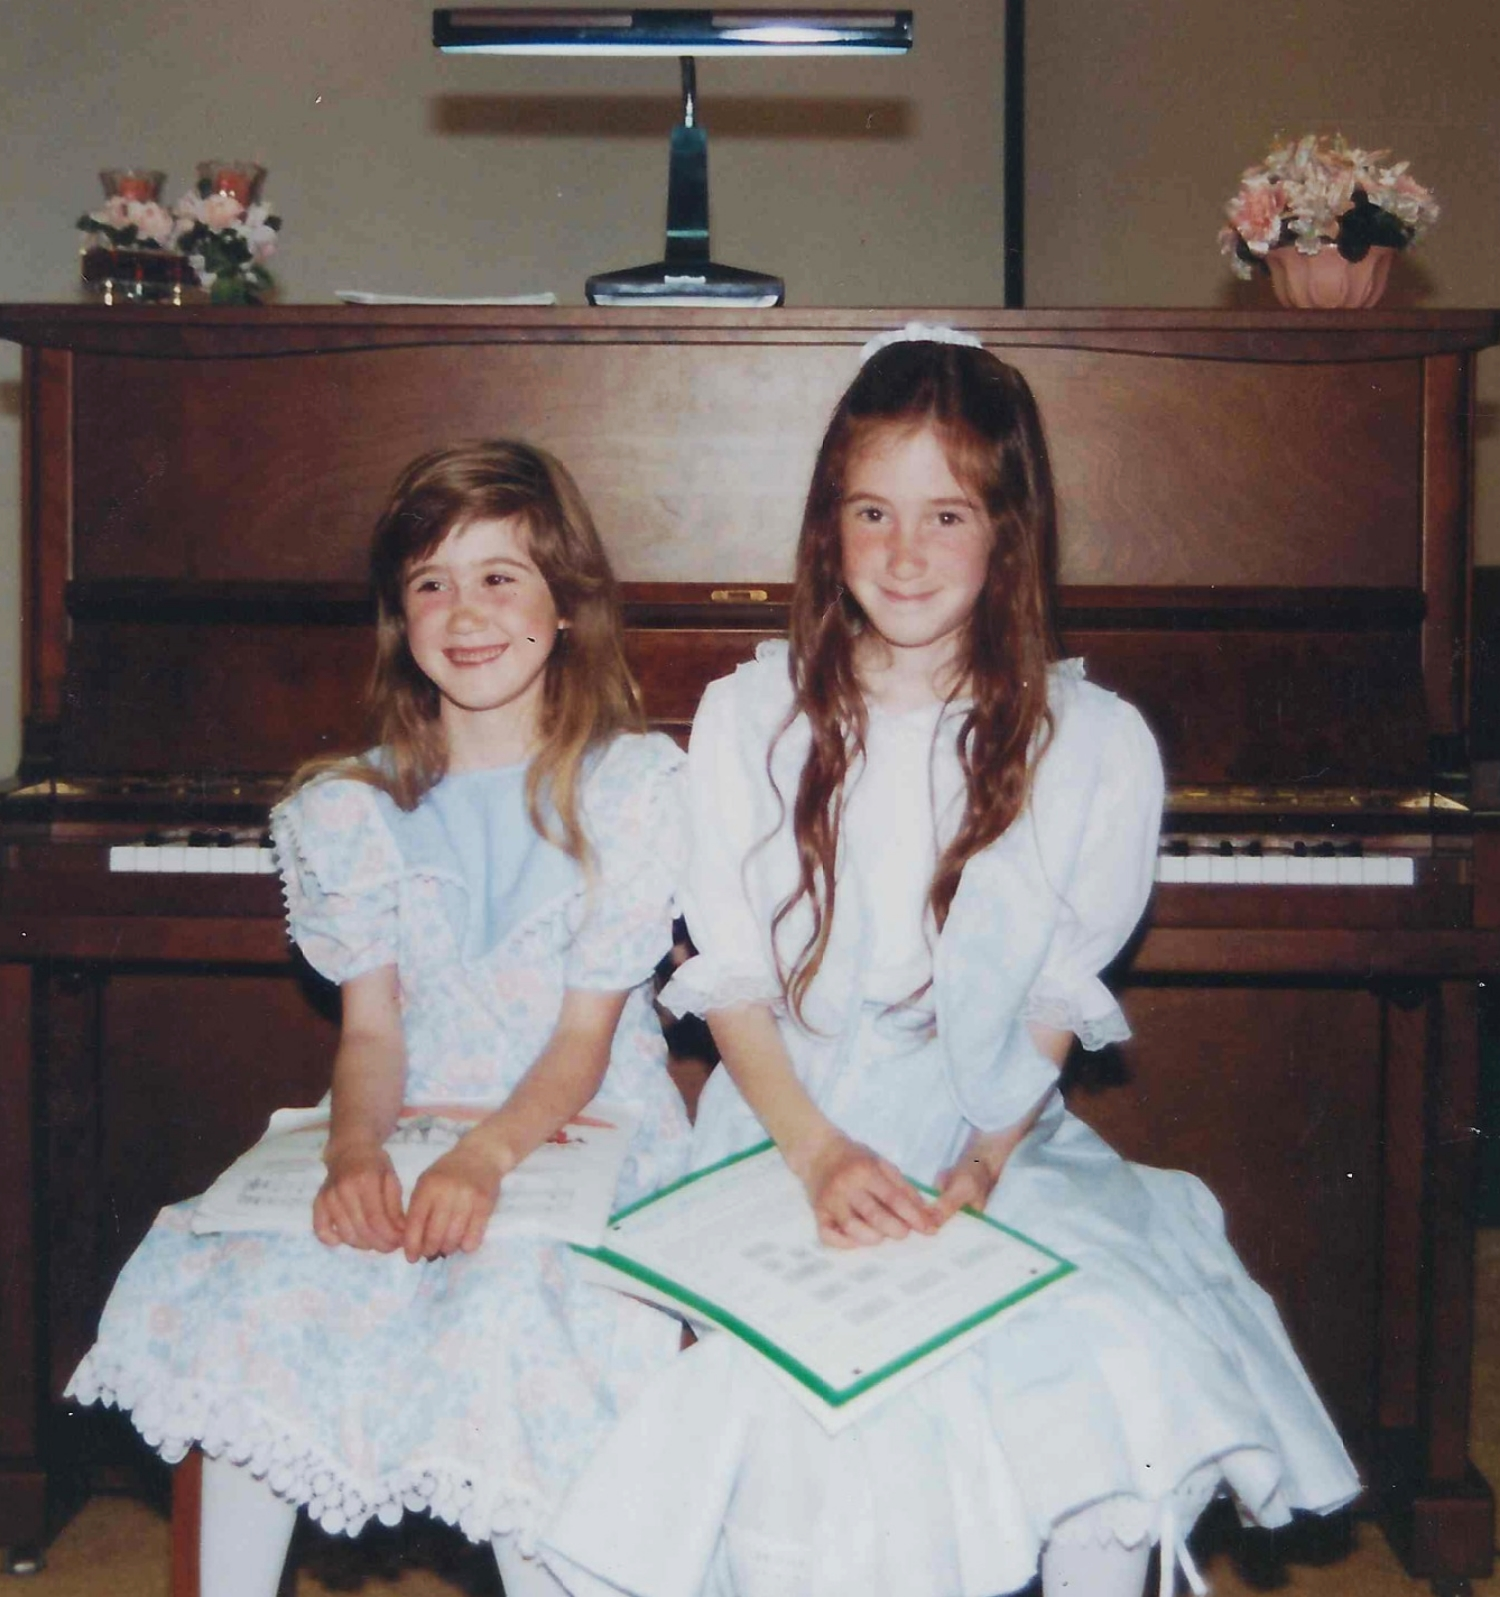 Josie and her sister Joya at a piano recital. (age 9)